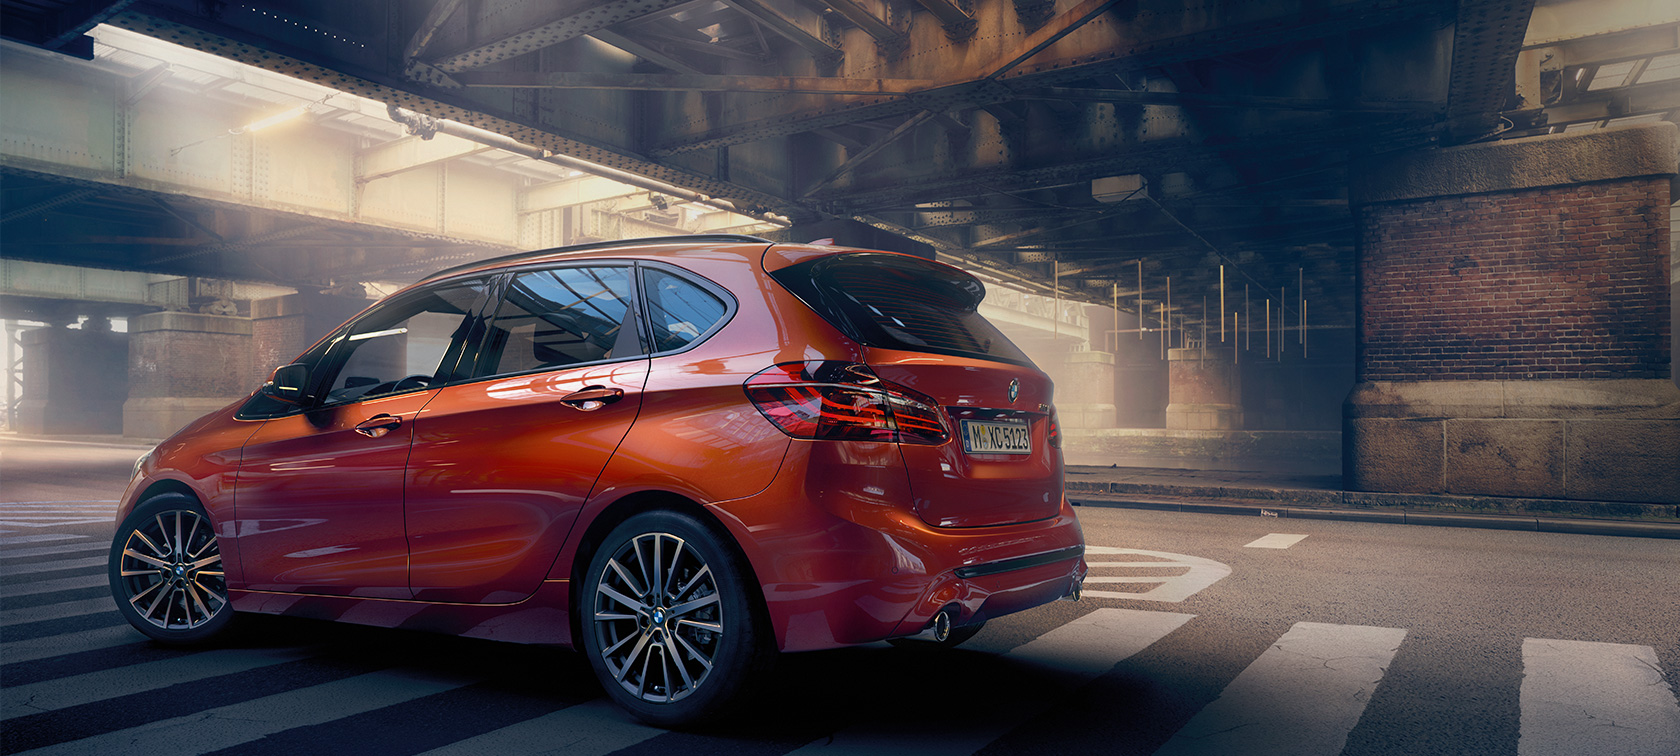 BMW Serie 2 Active Tourer F45 Facelift 2018 Sunset Orange metallizzato vista laterale da ferma in un padiglione